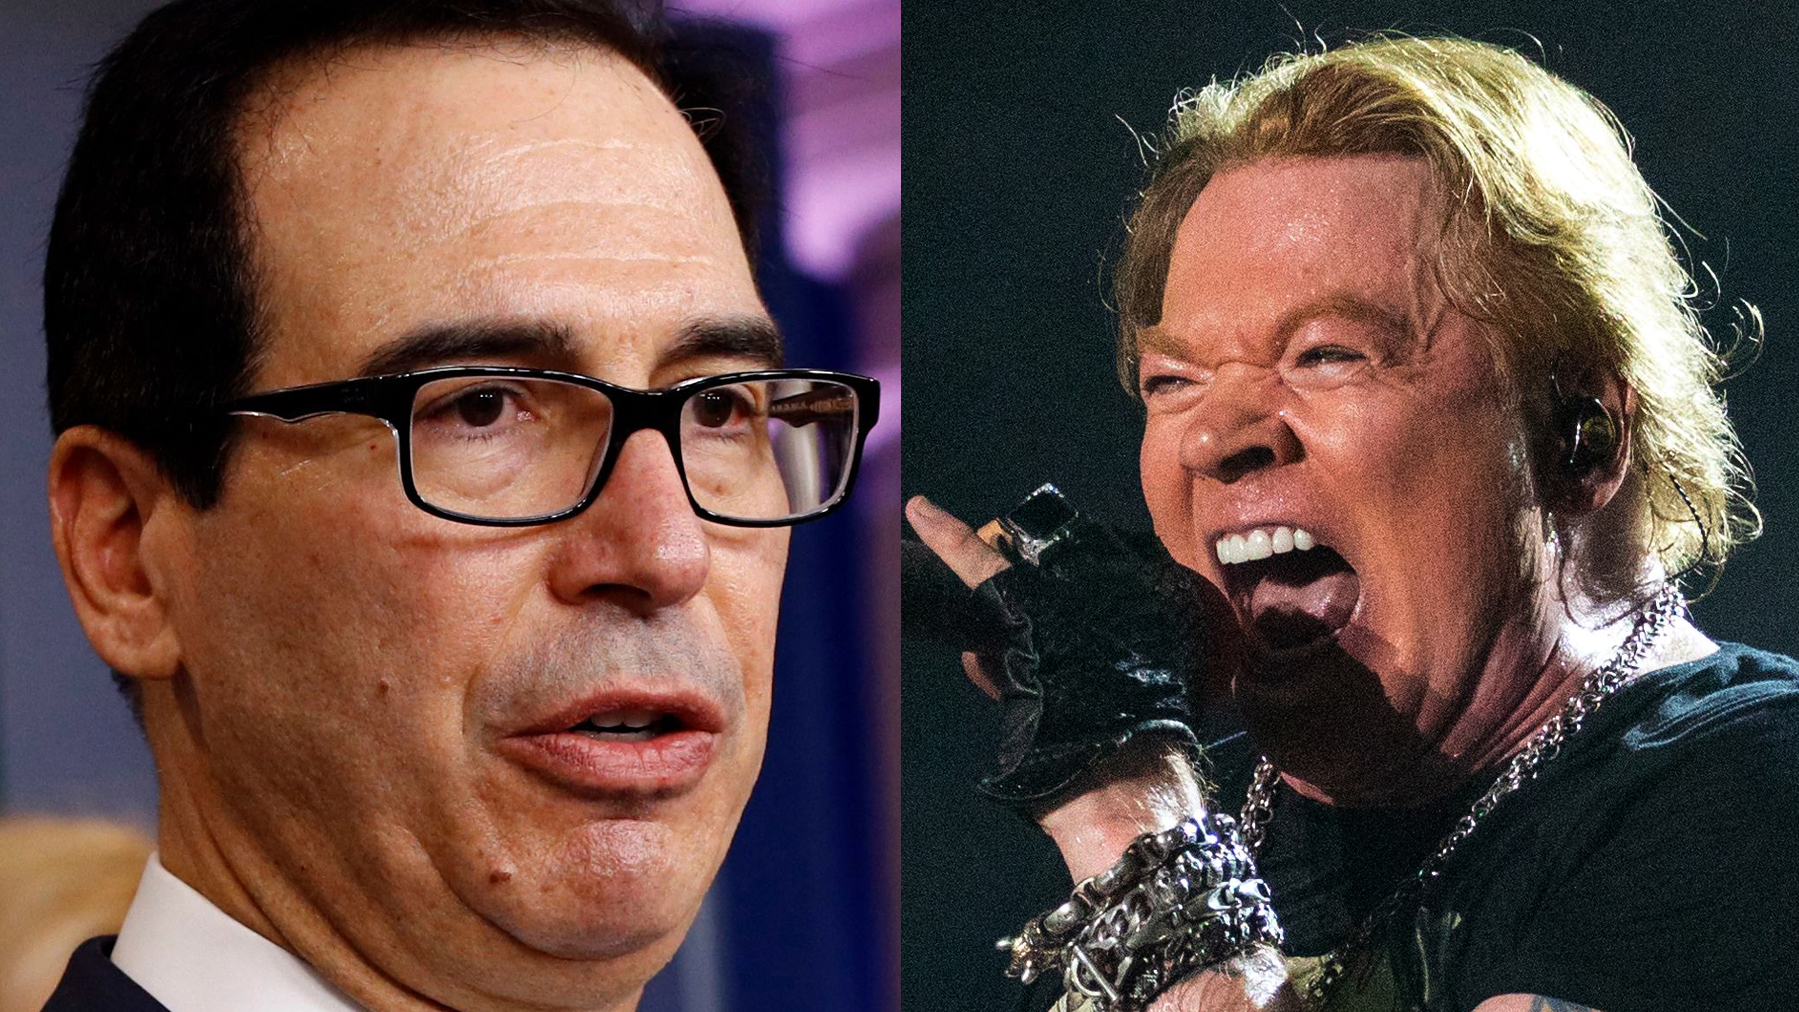 , Steve Mnuchin gets in Twitter feud with Axl Rose, posts Liberian flag instead of Old Glory, The Politicus